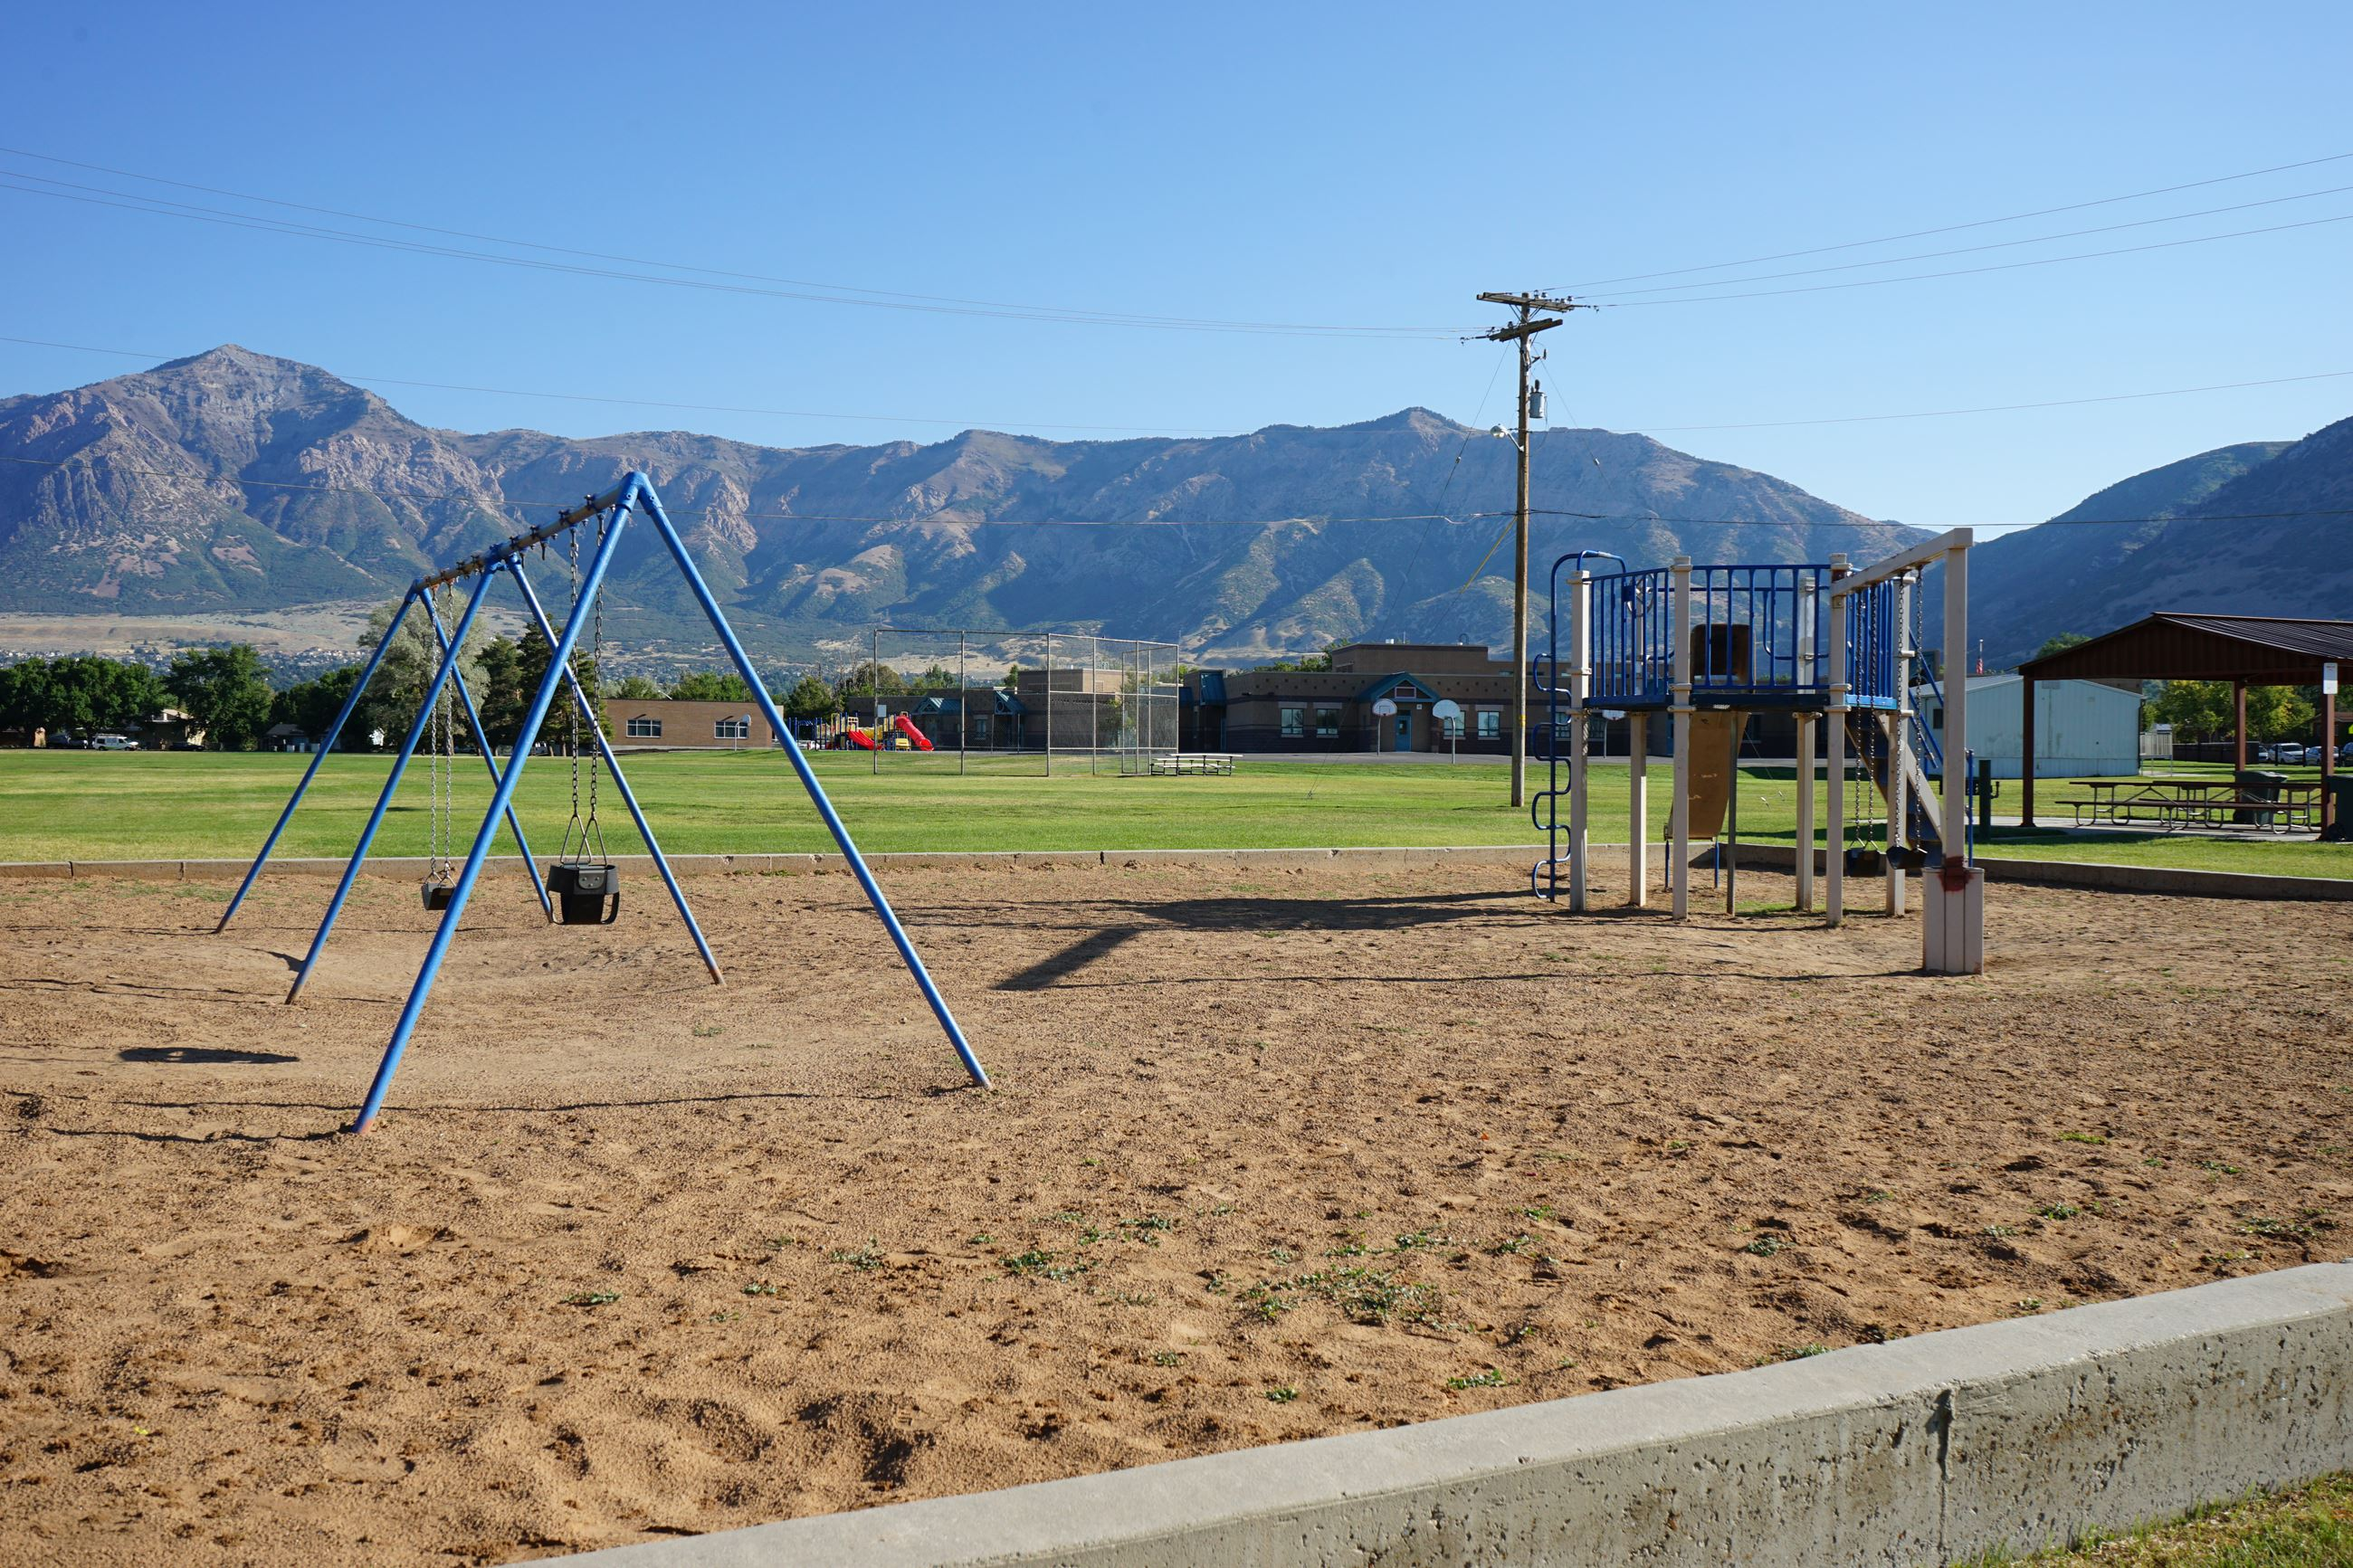 A playground with a swing set and slides with mountains in the background